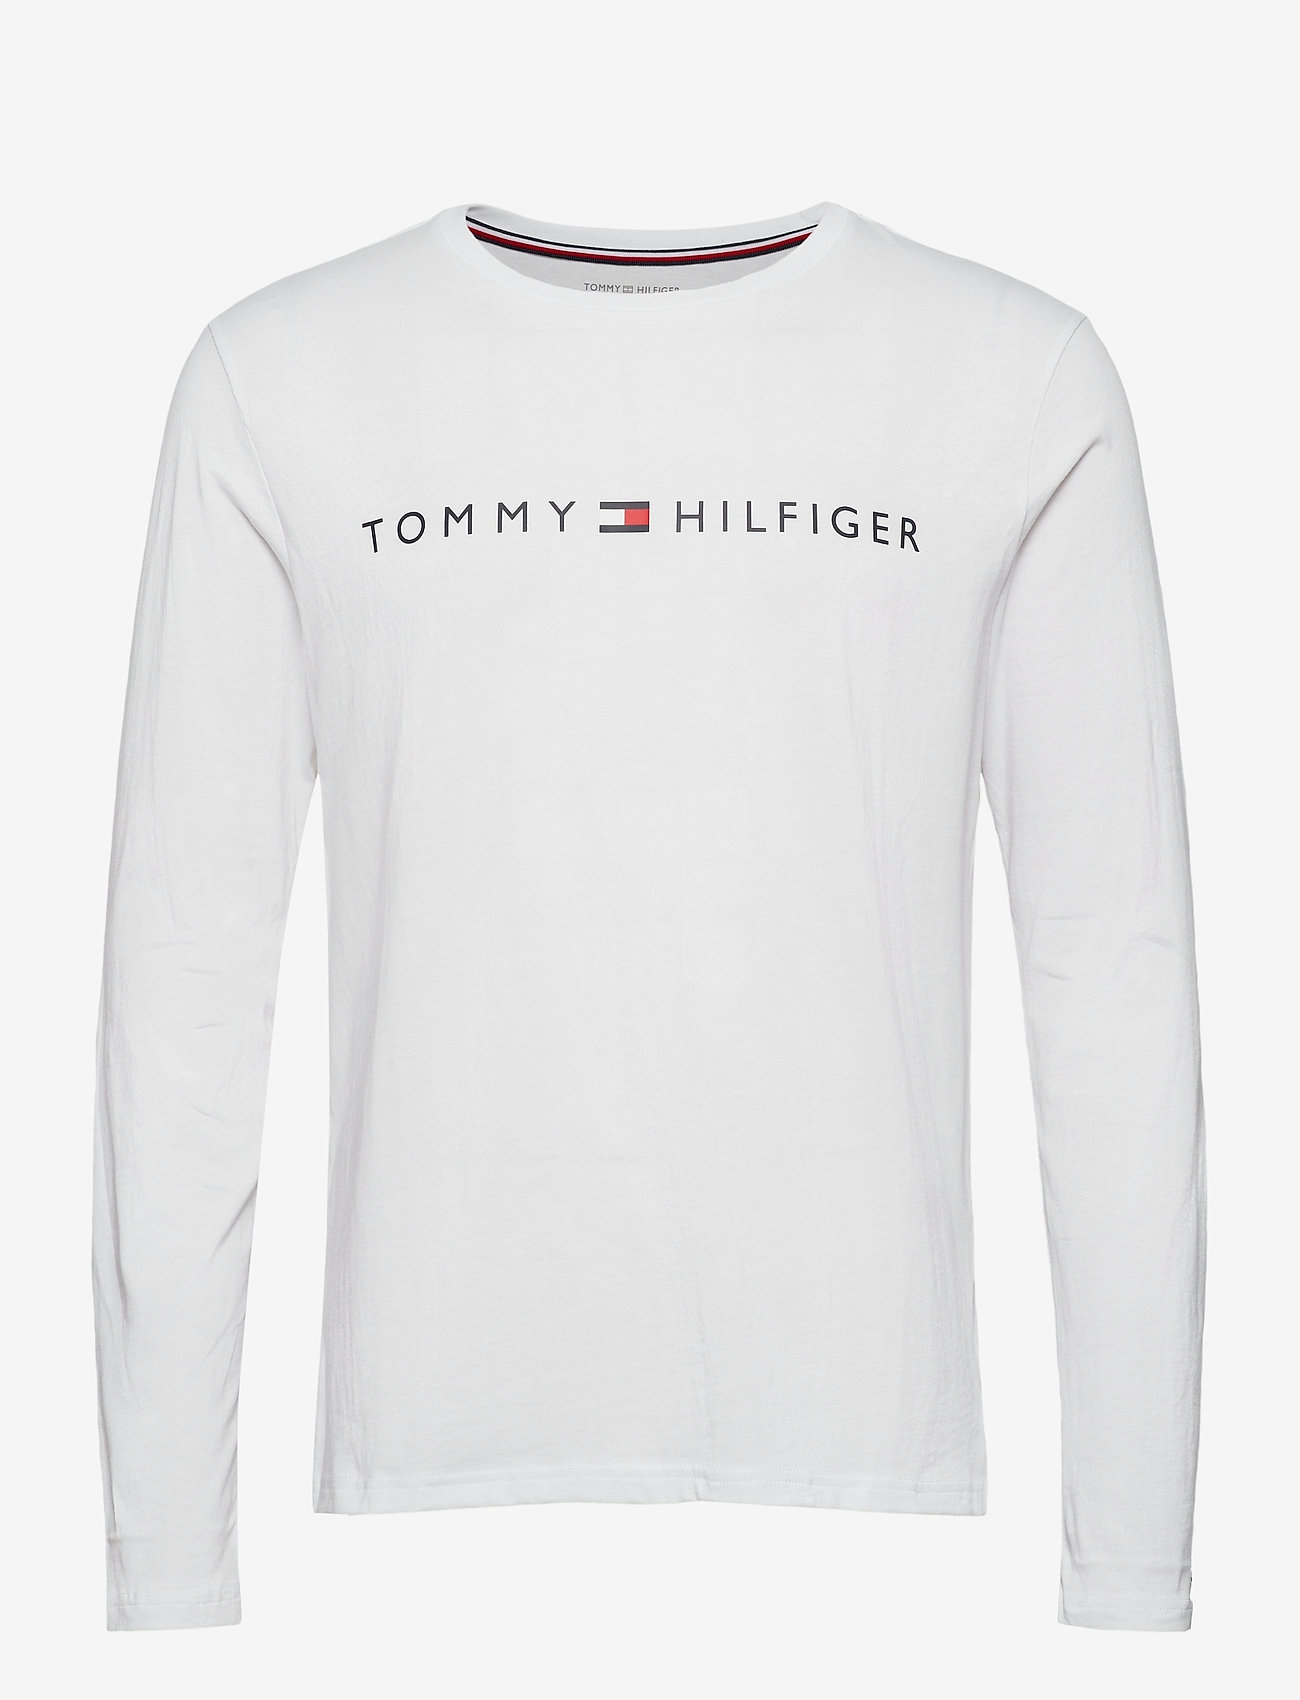 Tommy Hilfiger - CN LS TEE LOGO - long-sleeved t-shirts - white - 0